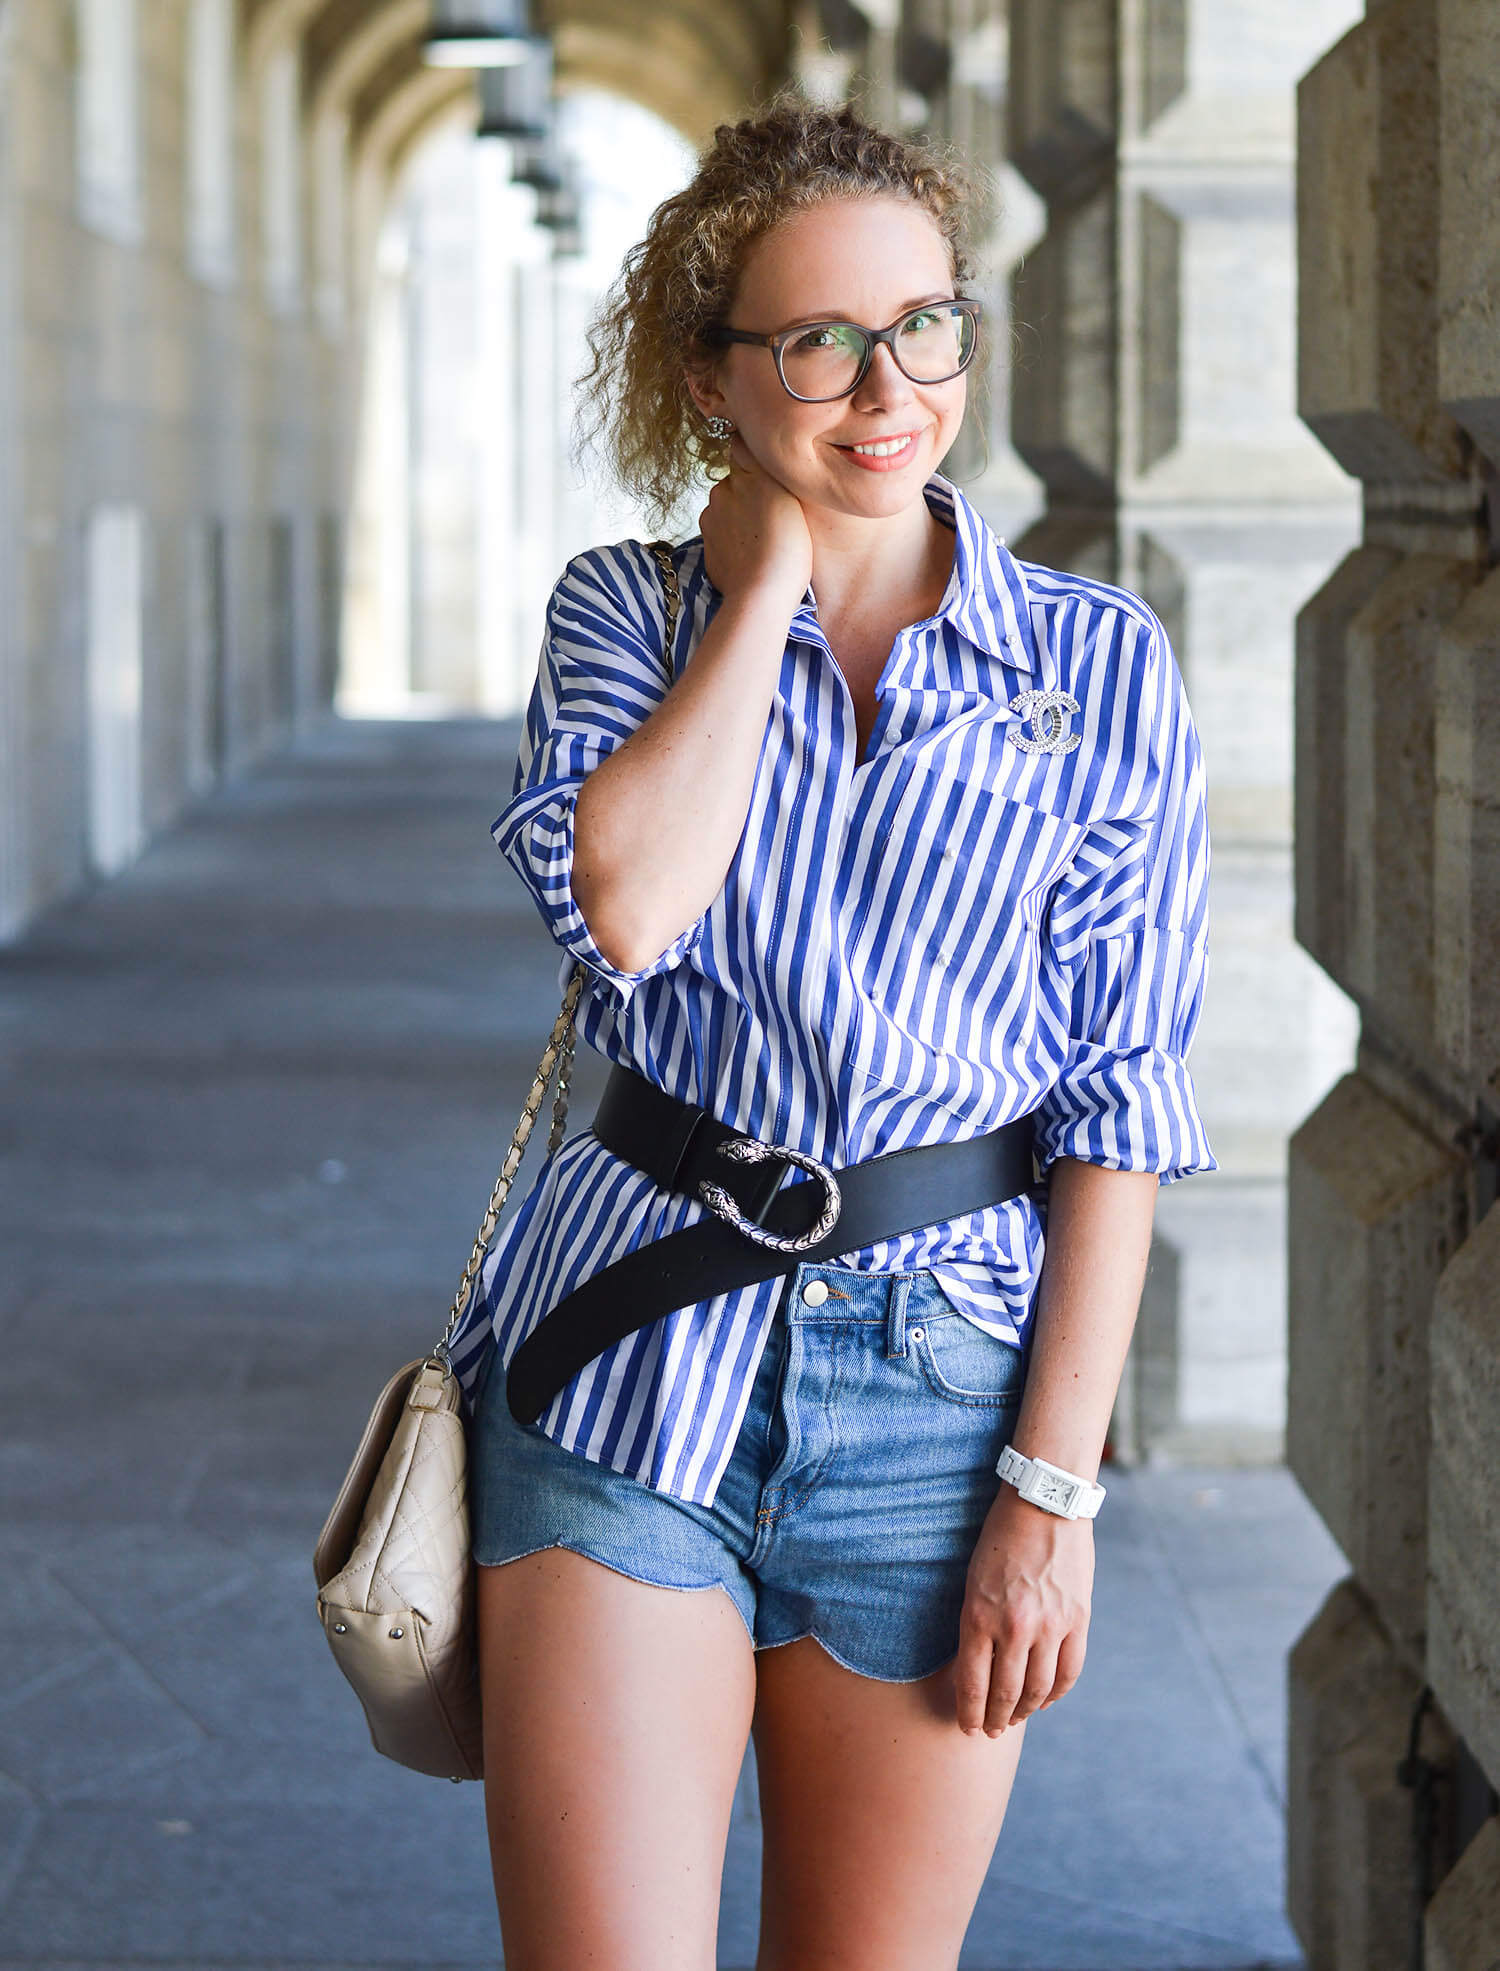 Marionette-fashionblog-nrw-Outfit-Gucci-Belt-Zara-Blouse-Pearls-Denim-Shorts-streetstyle